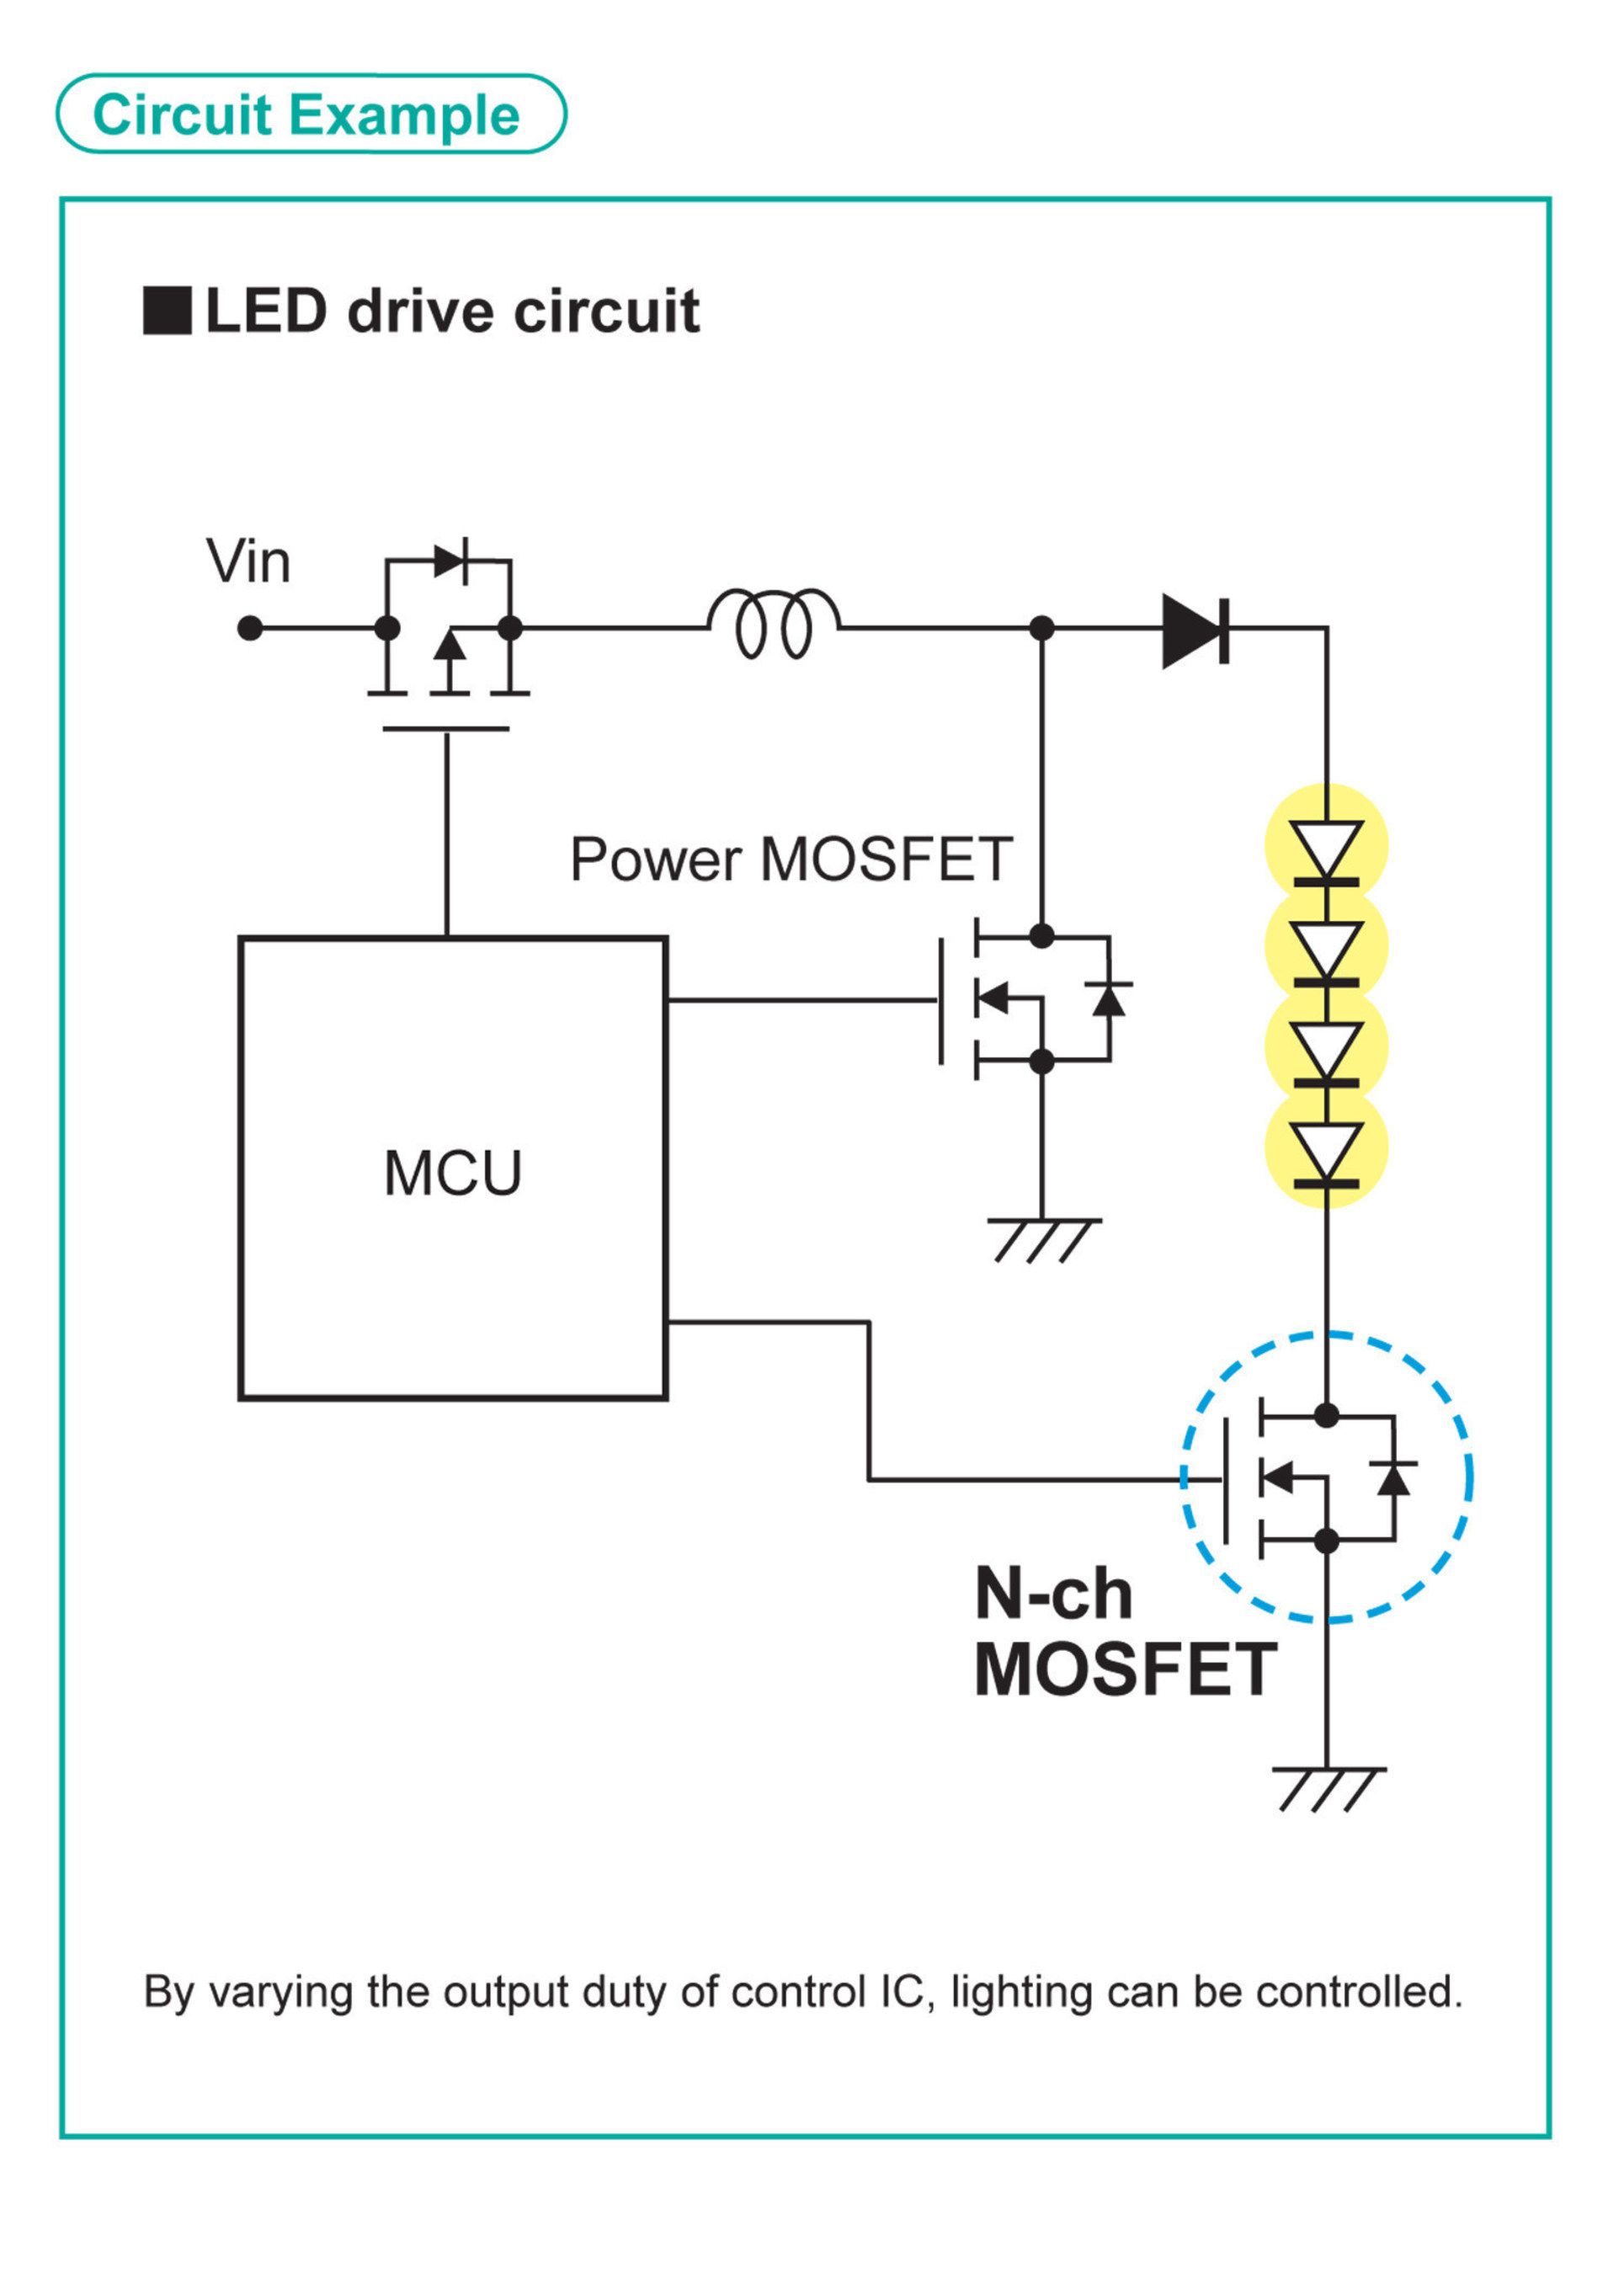 Toshiba's new N-channel MOSFETs can be used in electric power switching applications of over 10W, including small mobile devices that meet USB Type-C and USB Power Delivery standards.